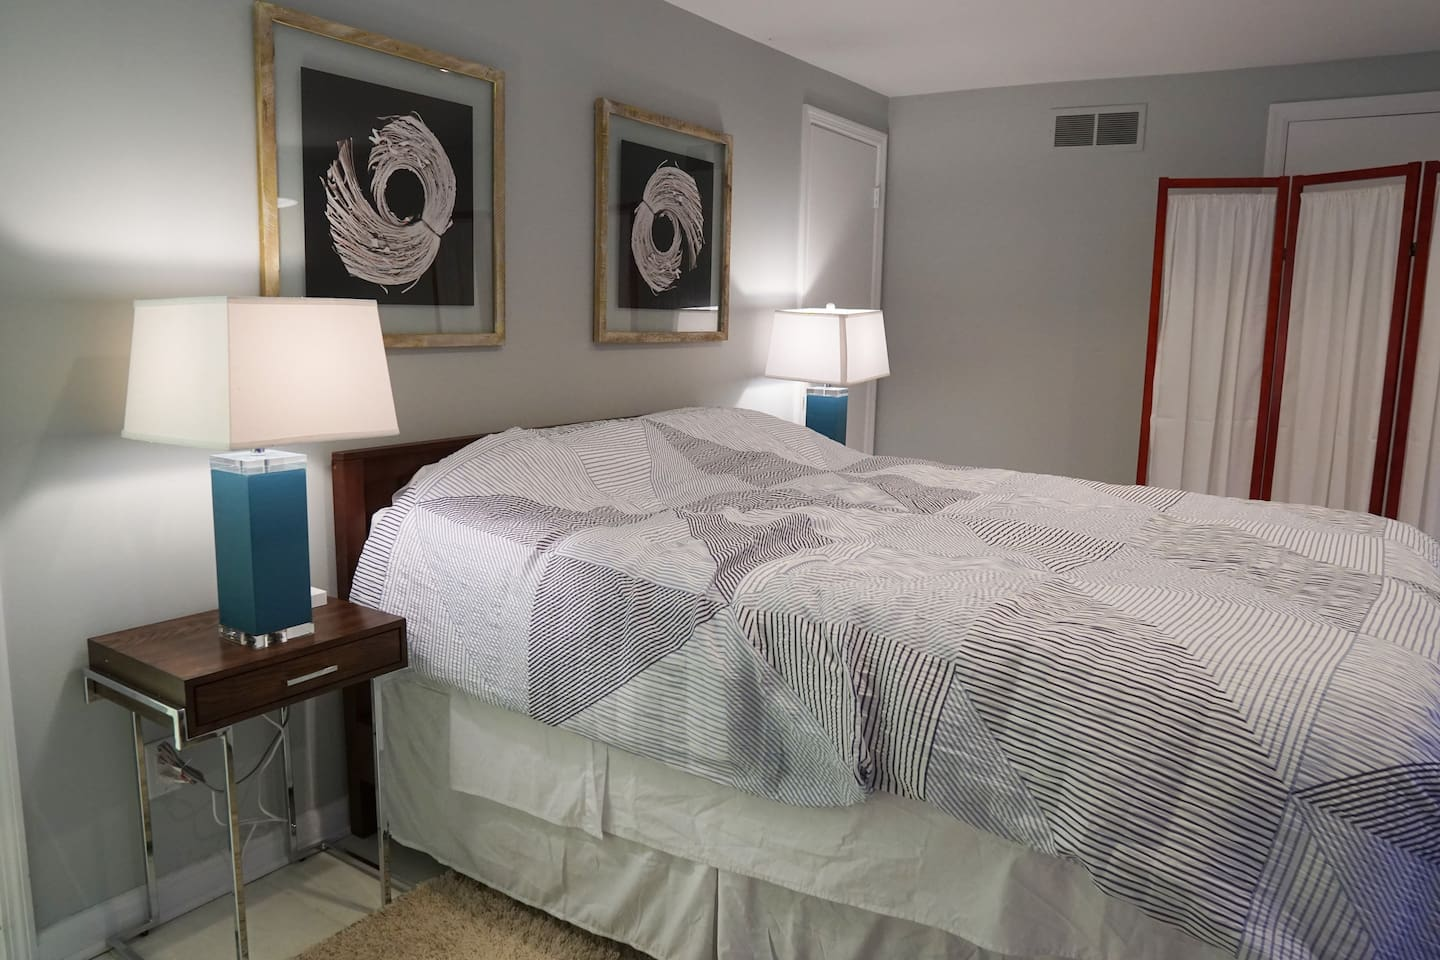 The bedroom features a comfy queen size mattress and convenient usb access on both night stands.